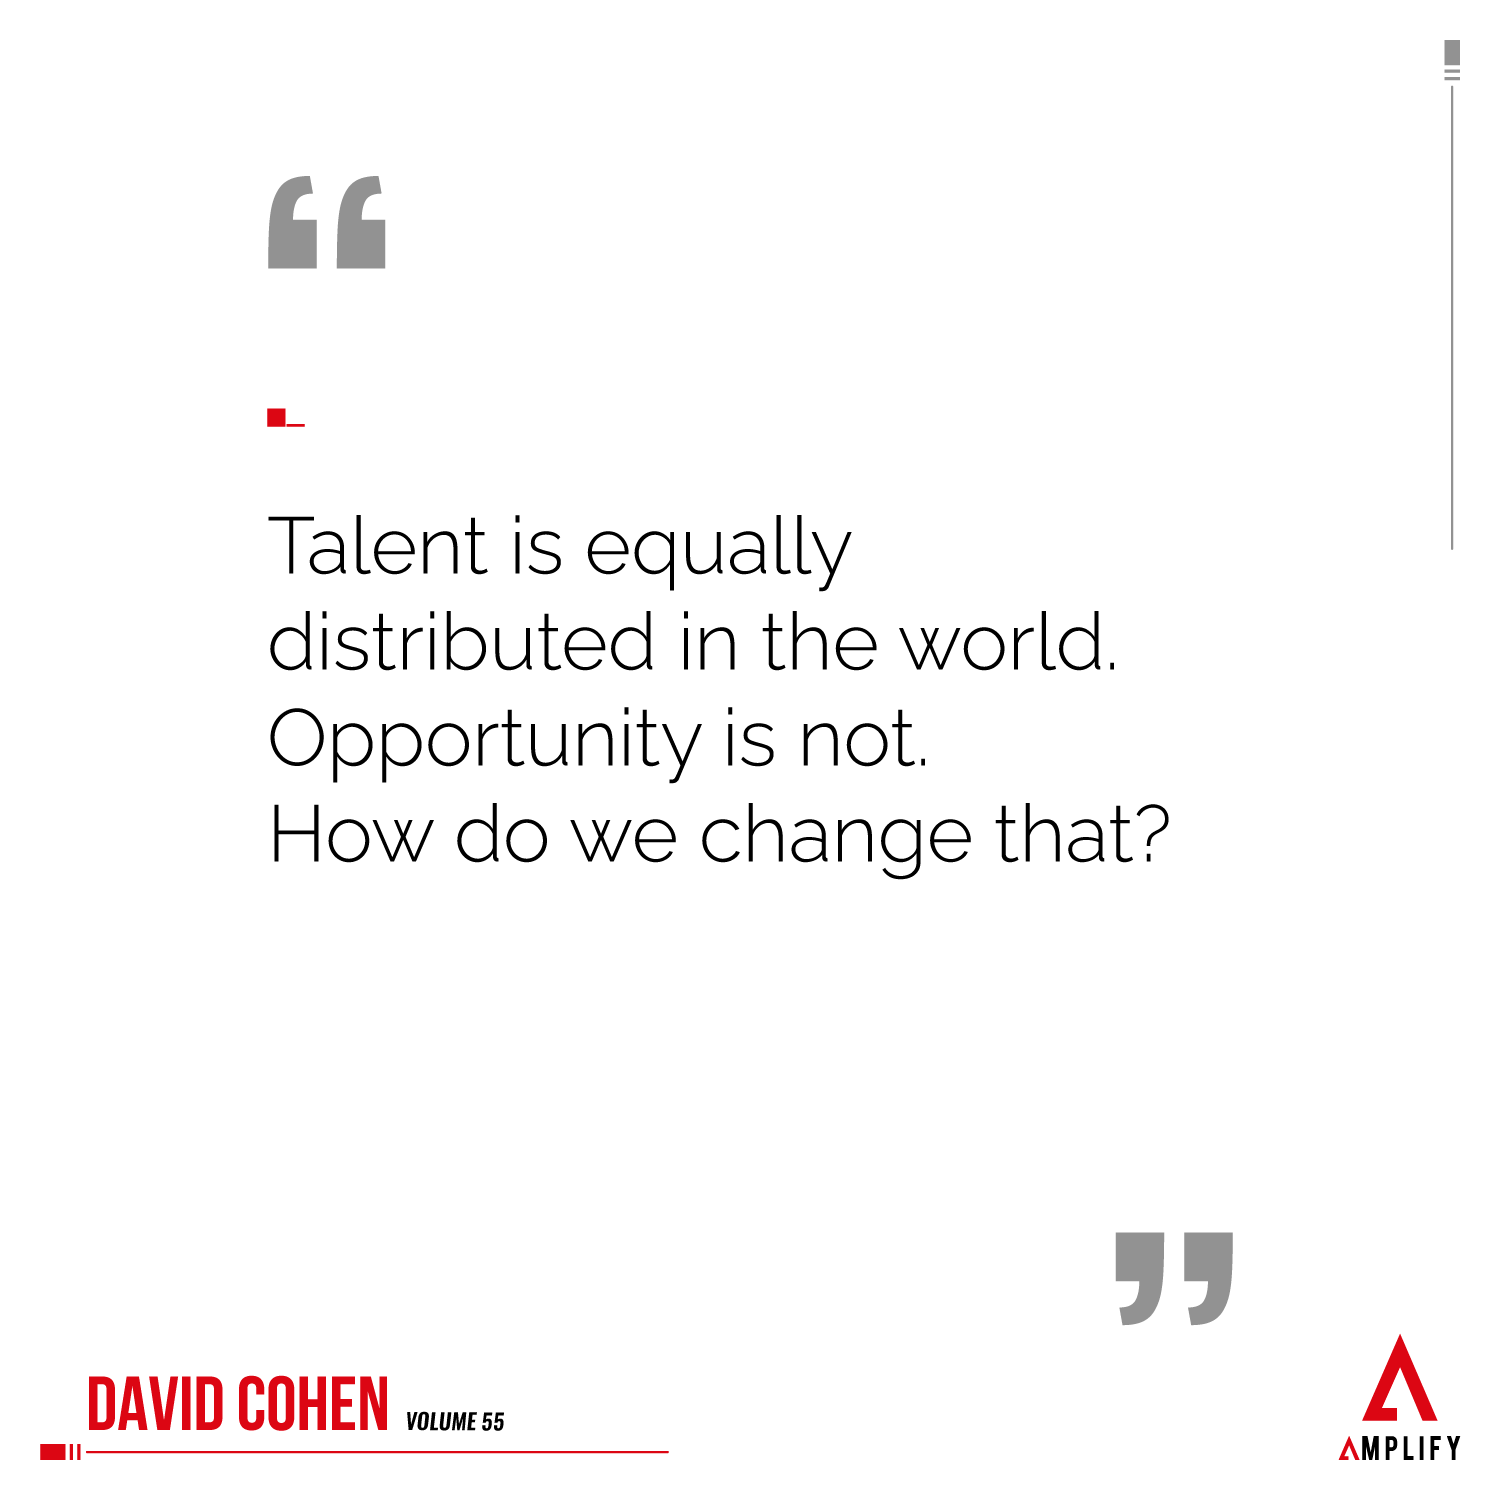 Quote: Talent is equally distributed in the world. Opportunity is not. How do we change that?